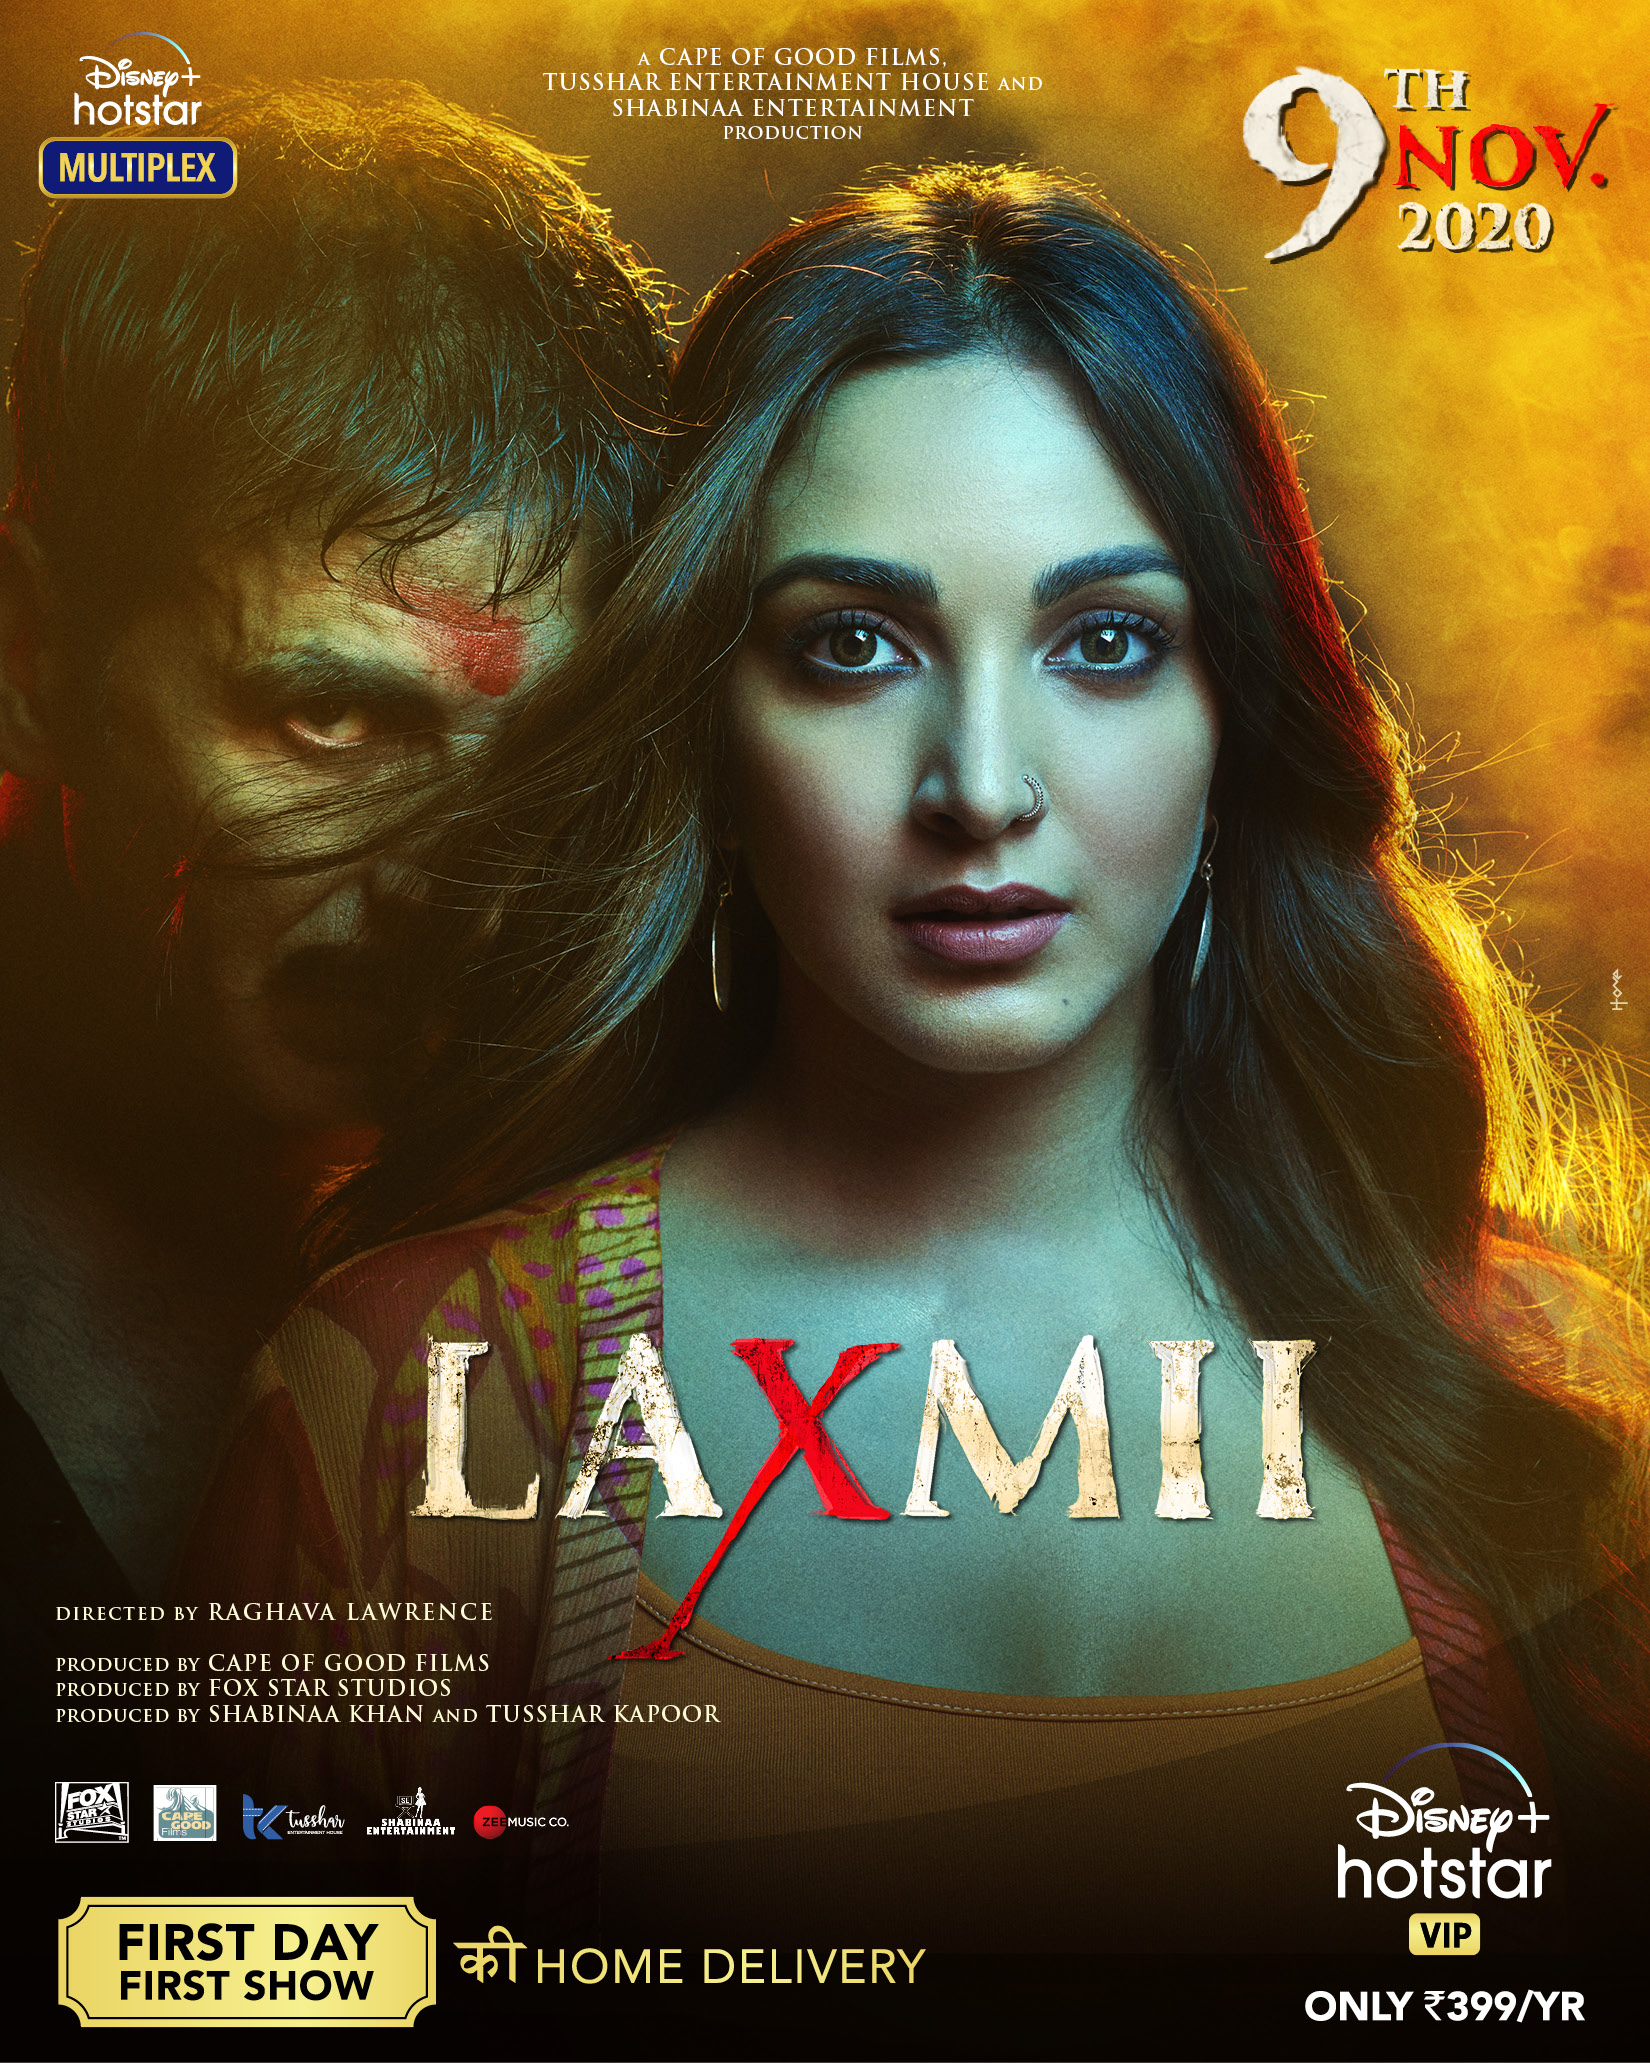 Laxmii (2020) Hindi 720p WEB-DL x264 AAC 1.4GB ESub